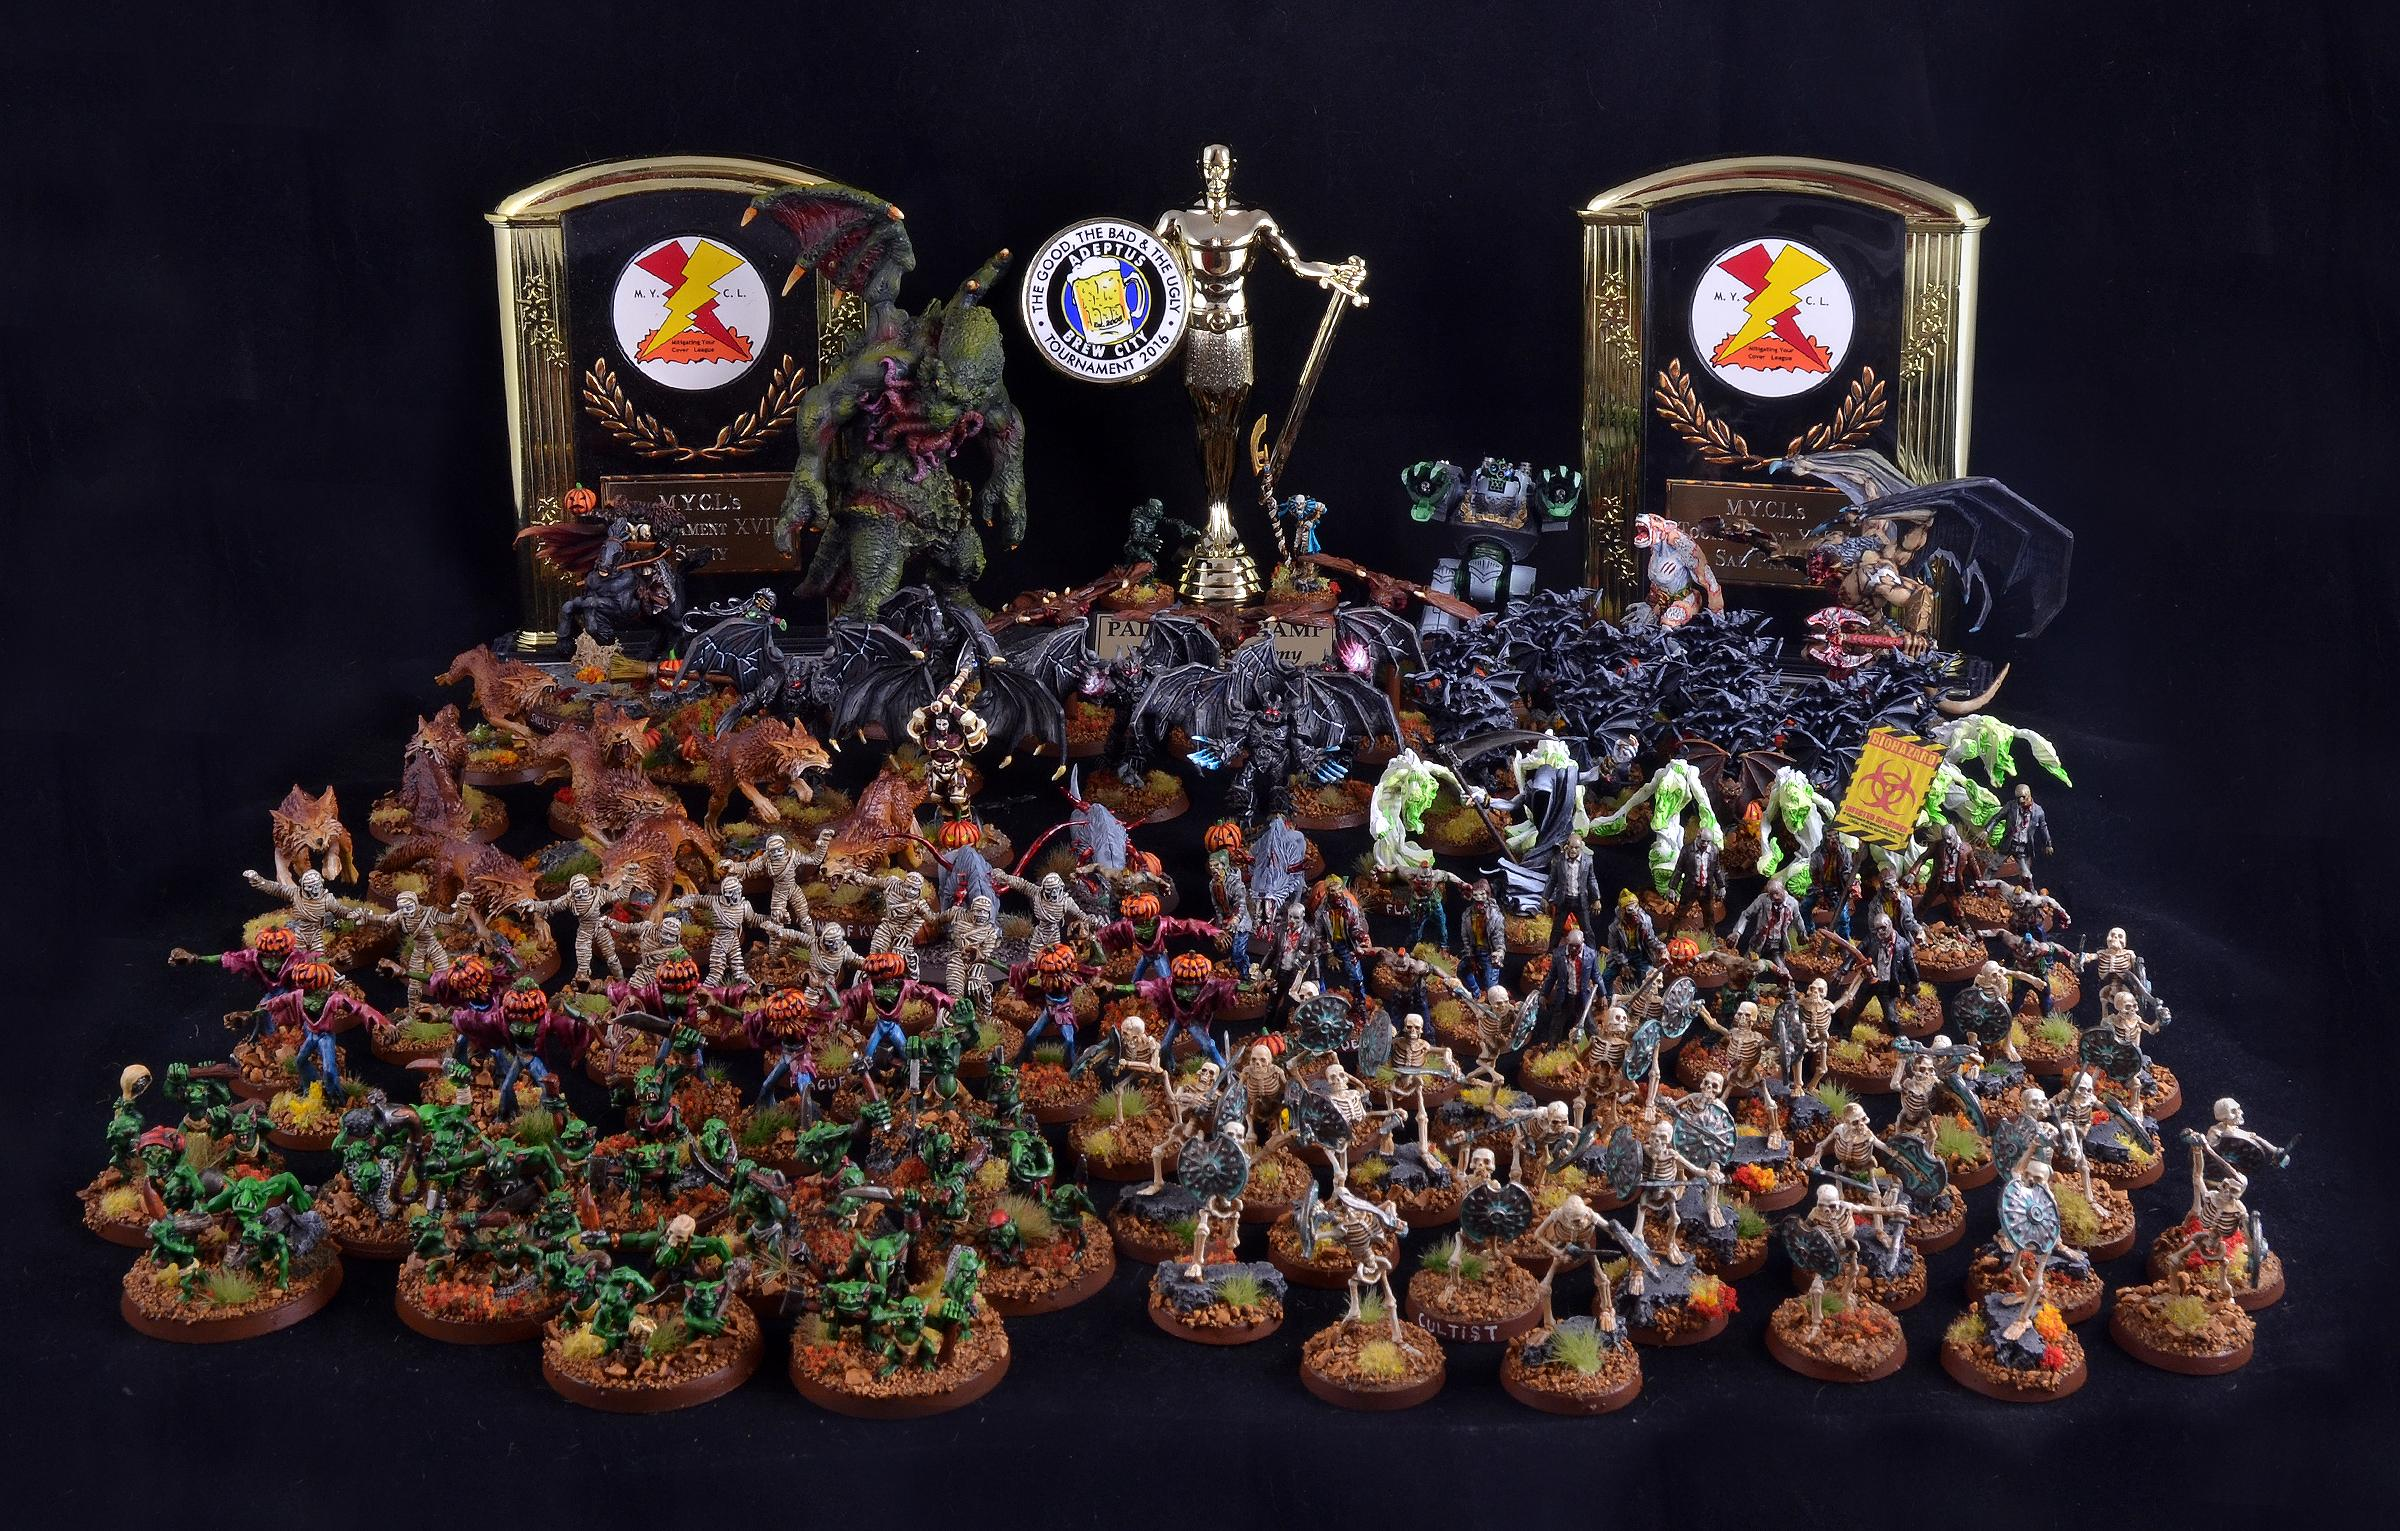 Chaos, Counts As, Halloween, Halloween Army, Undead, Warhammer 40,000